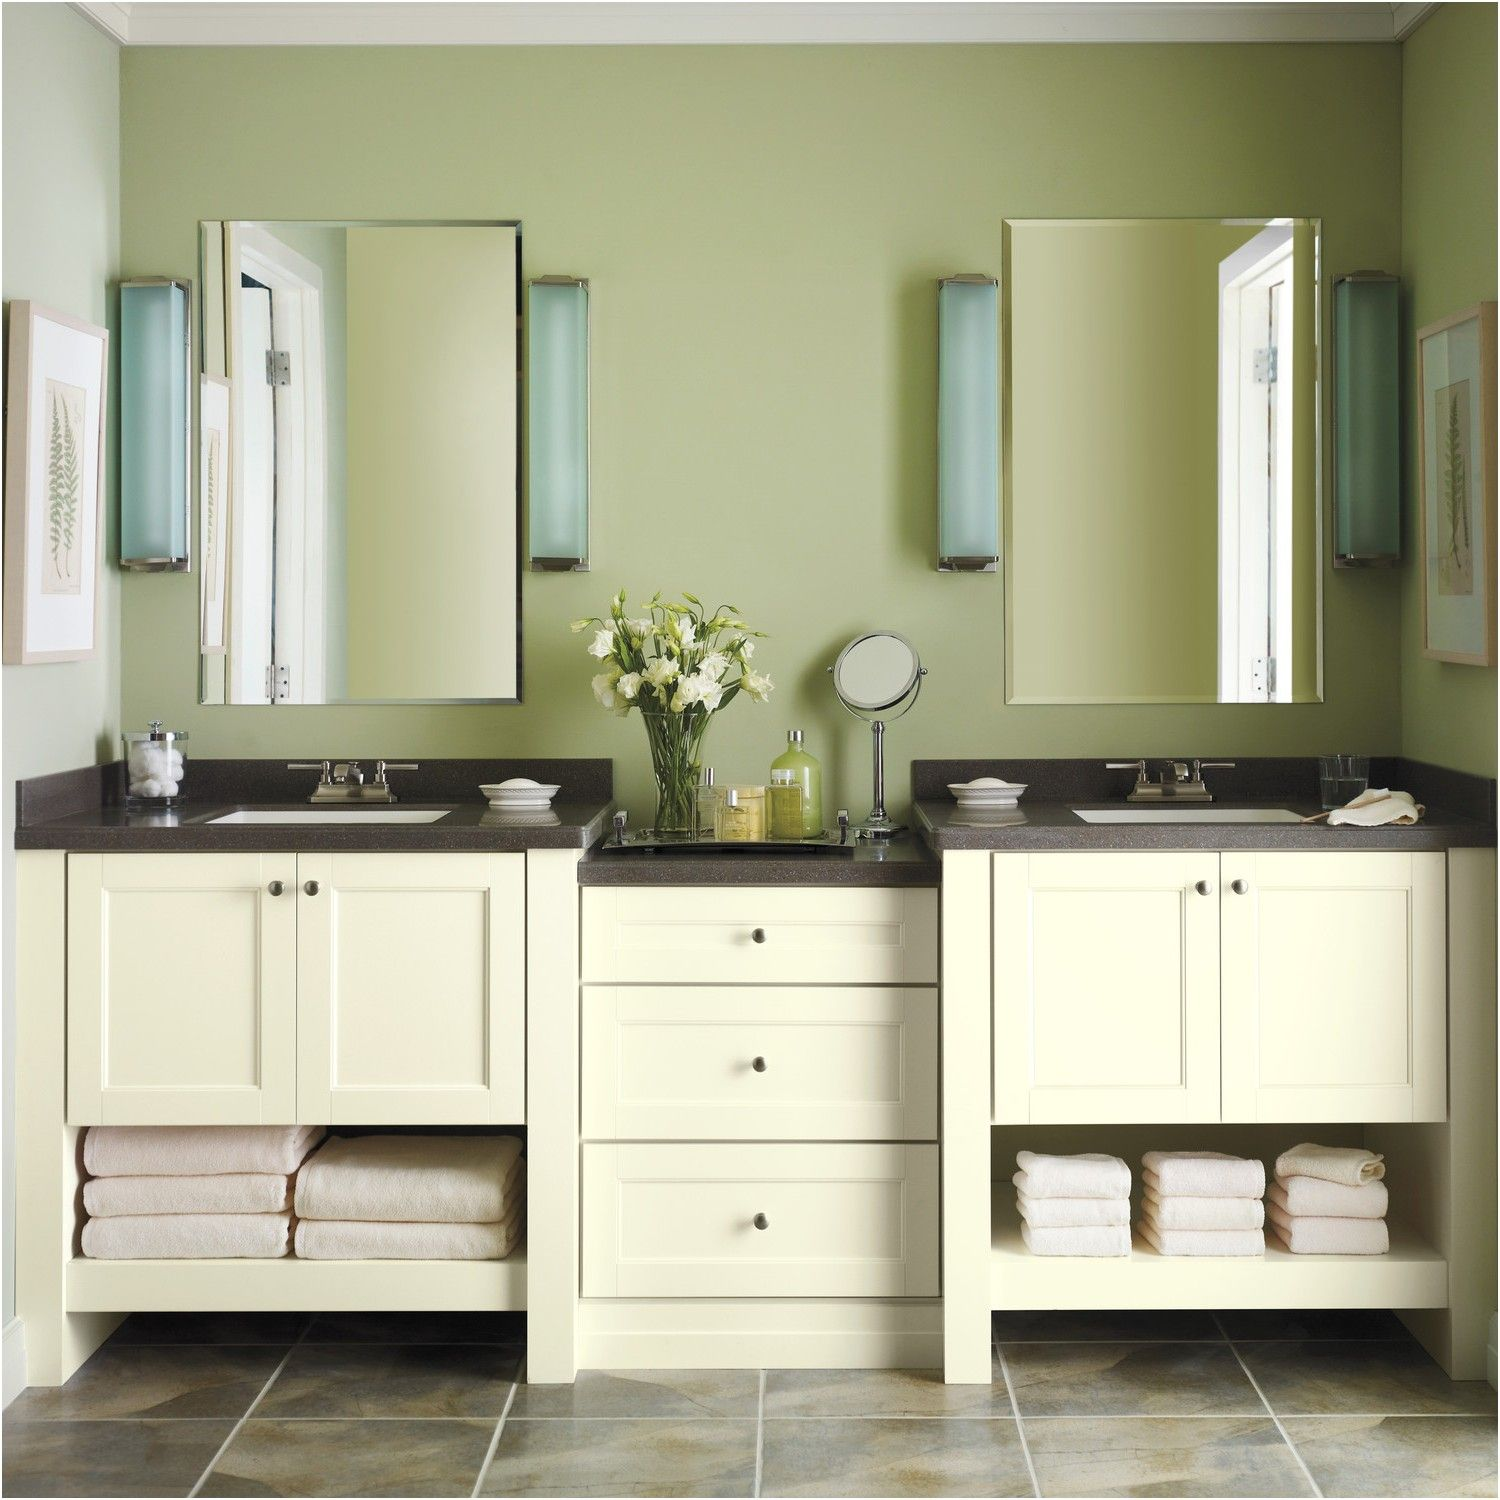 Martha Living Cabinet Solutions From The Home Depot Bathroom Cabinets